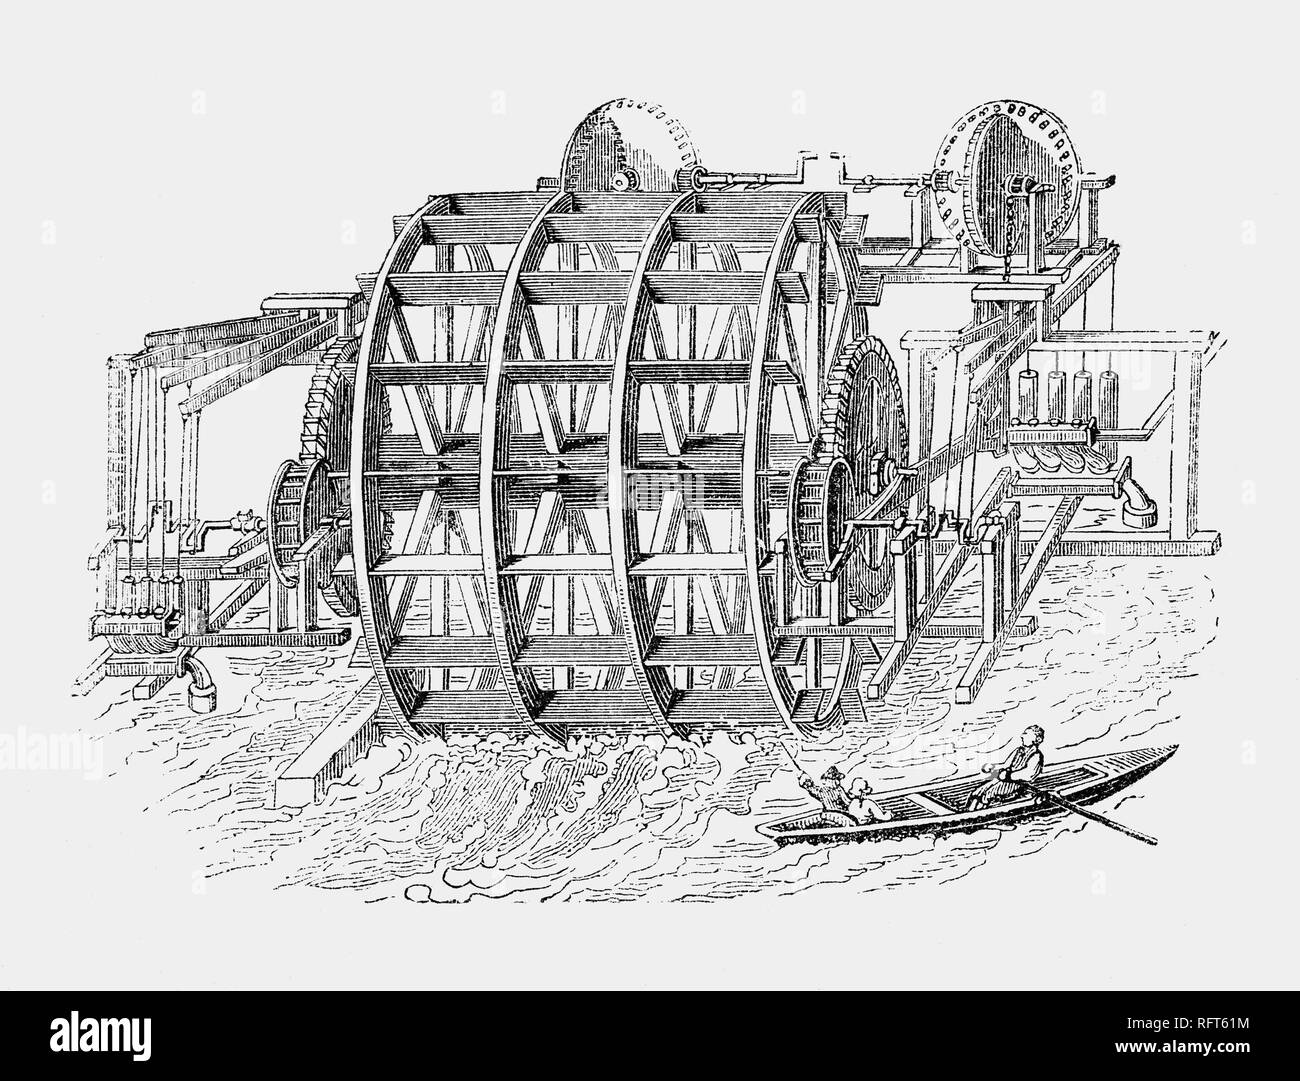 On December 24th,  in 1582, the Dutchman Pieter Maritz's London Bridge Waterworks began supplying fresh water from the Thames to private houses in the City of London.  The rather rickety-looking apparatus worked well, but was destroyed in the Great Fire of 1666. Replaced by his grandson, continueing in use until the removal of the bridge in 1822. The waterworks was one of the largest water companies in London whose initial growth was linked to the City's expansion, but  limited in the eighteenth century because its pipes could not reach the expanding suburbs. - Stock Image